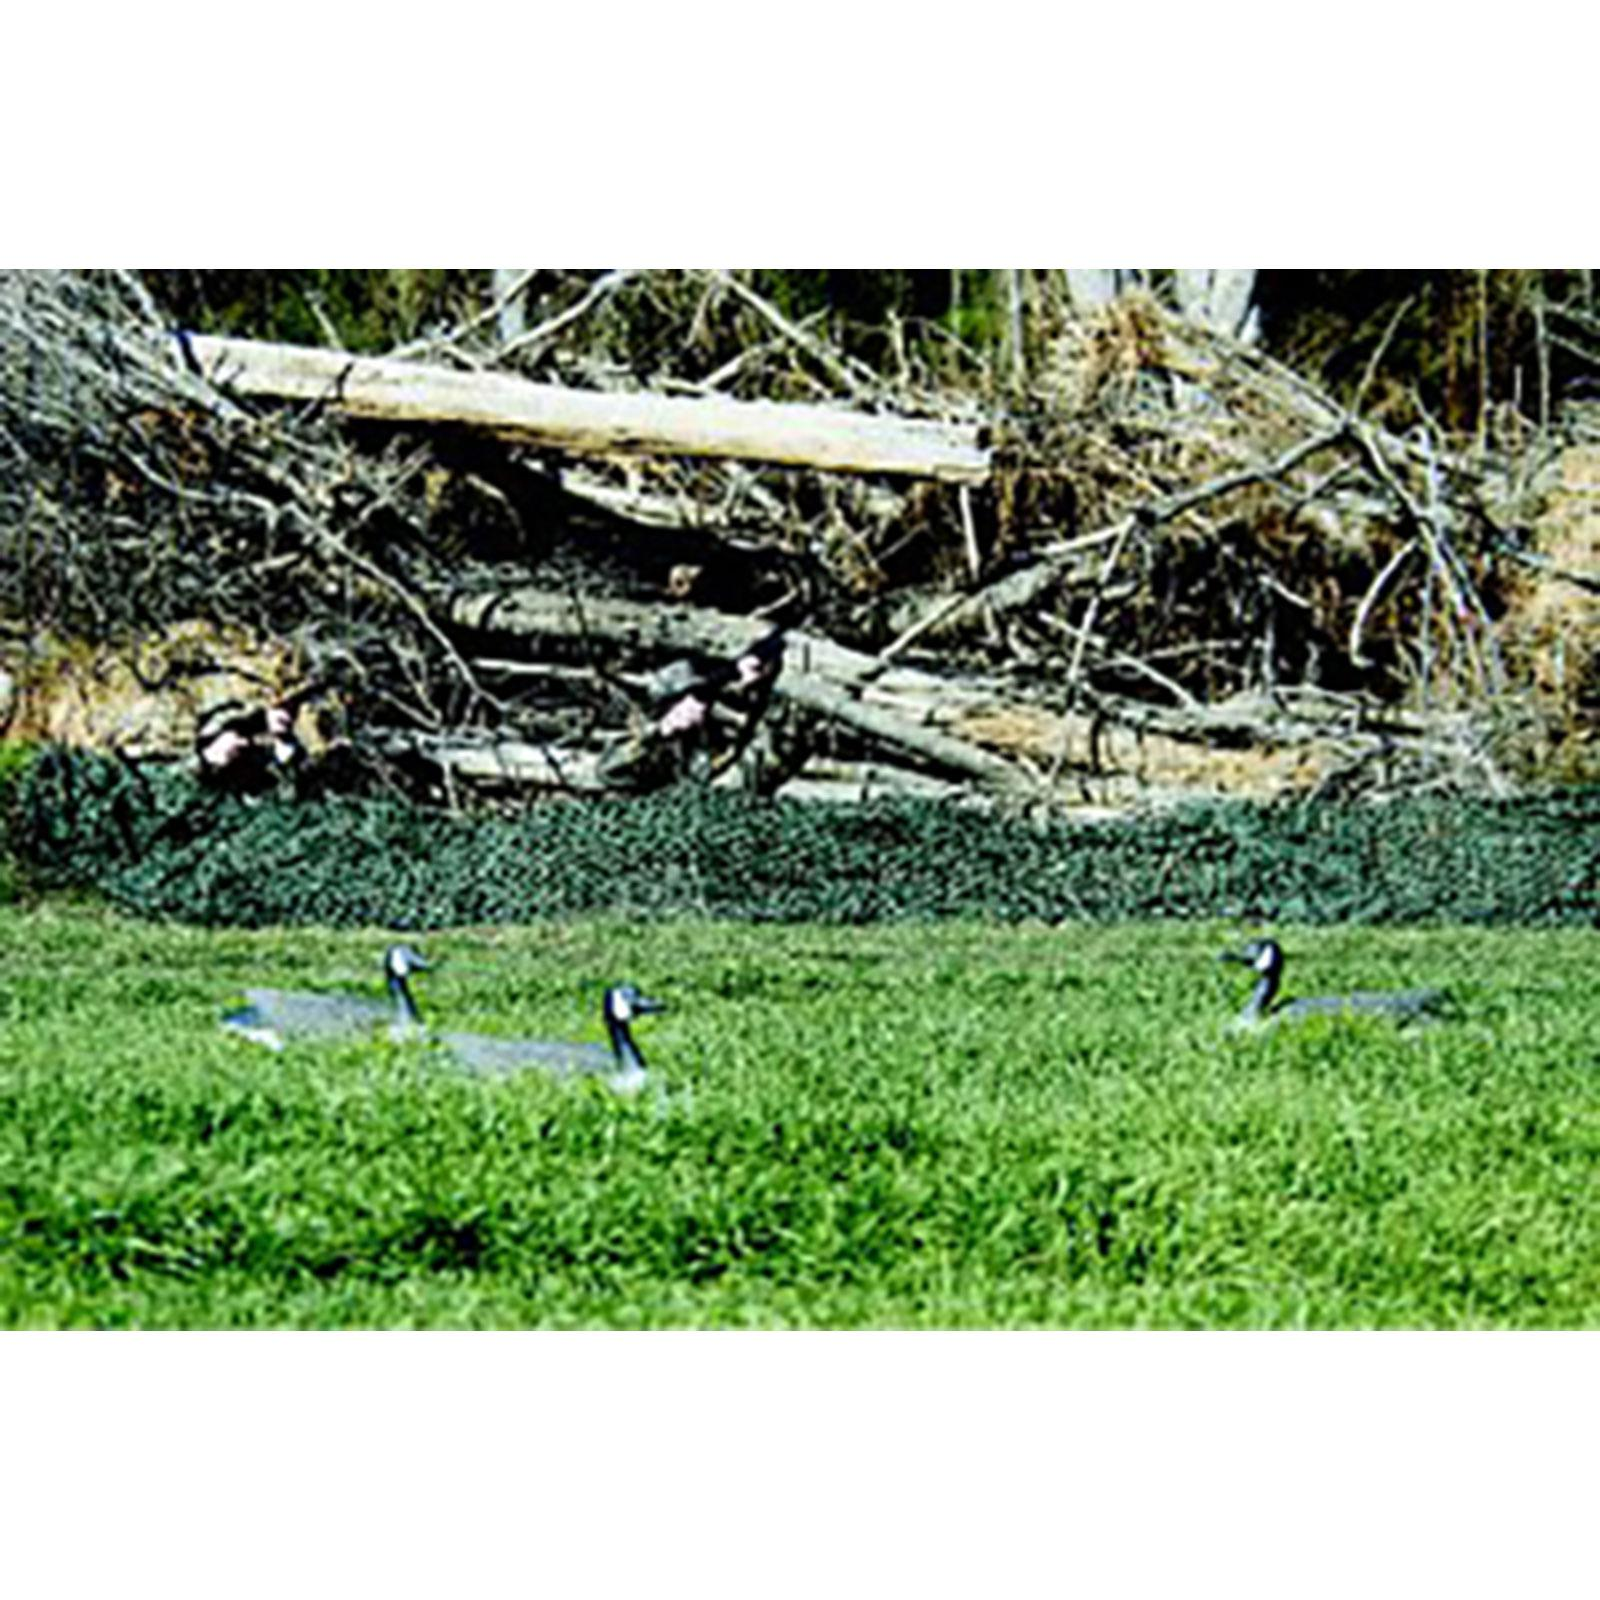 "Camo Unlimited Basic Military 9' 10"" x 9' 10"" Camouflage Netting, Woodland, Green and Brown"